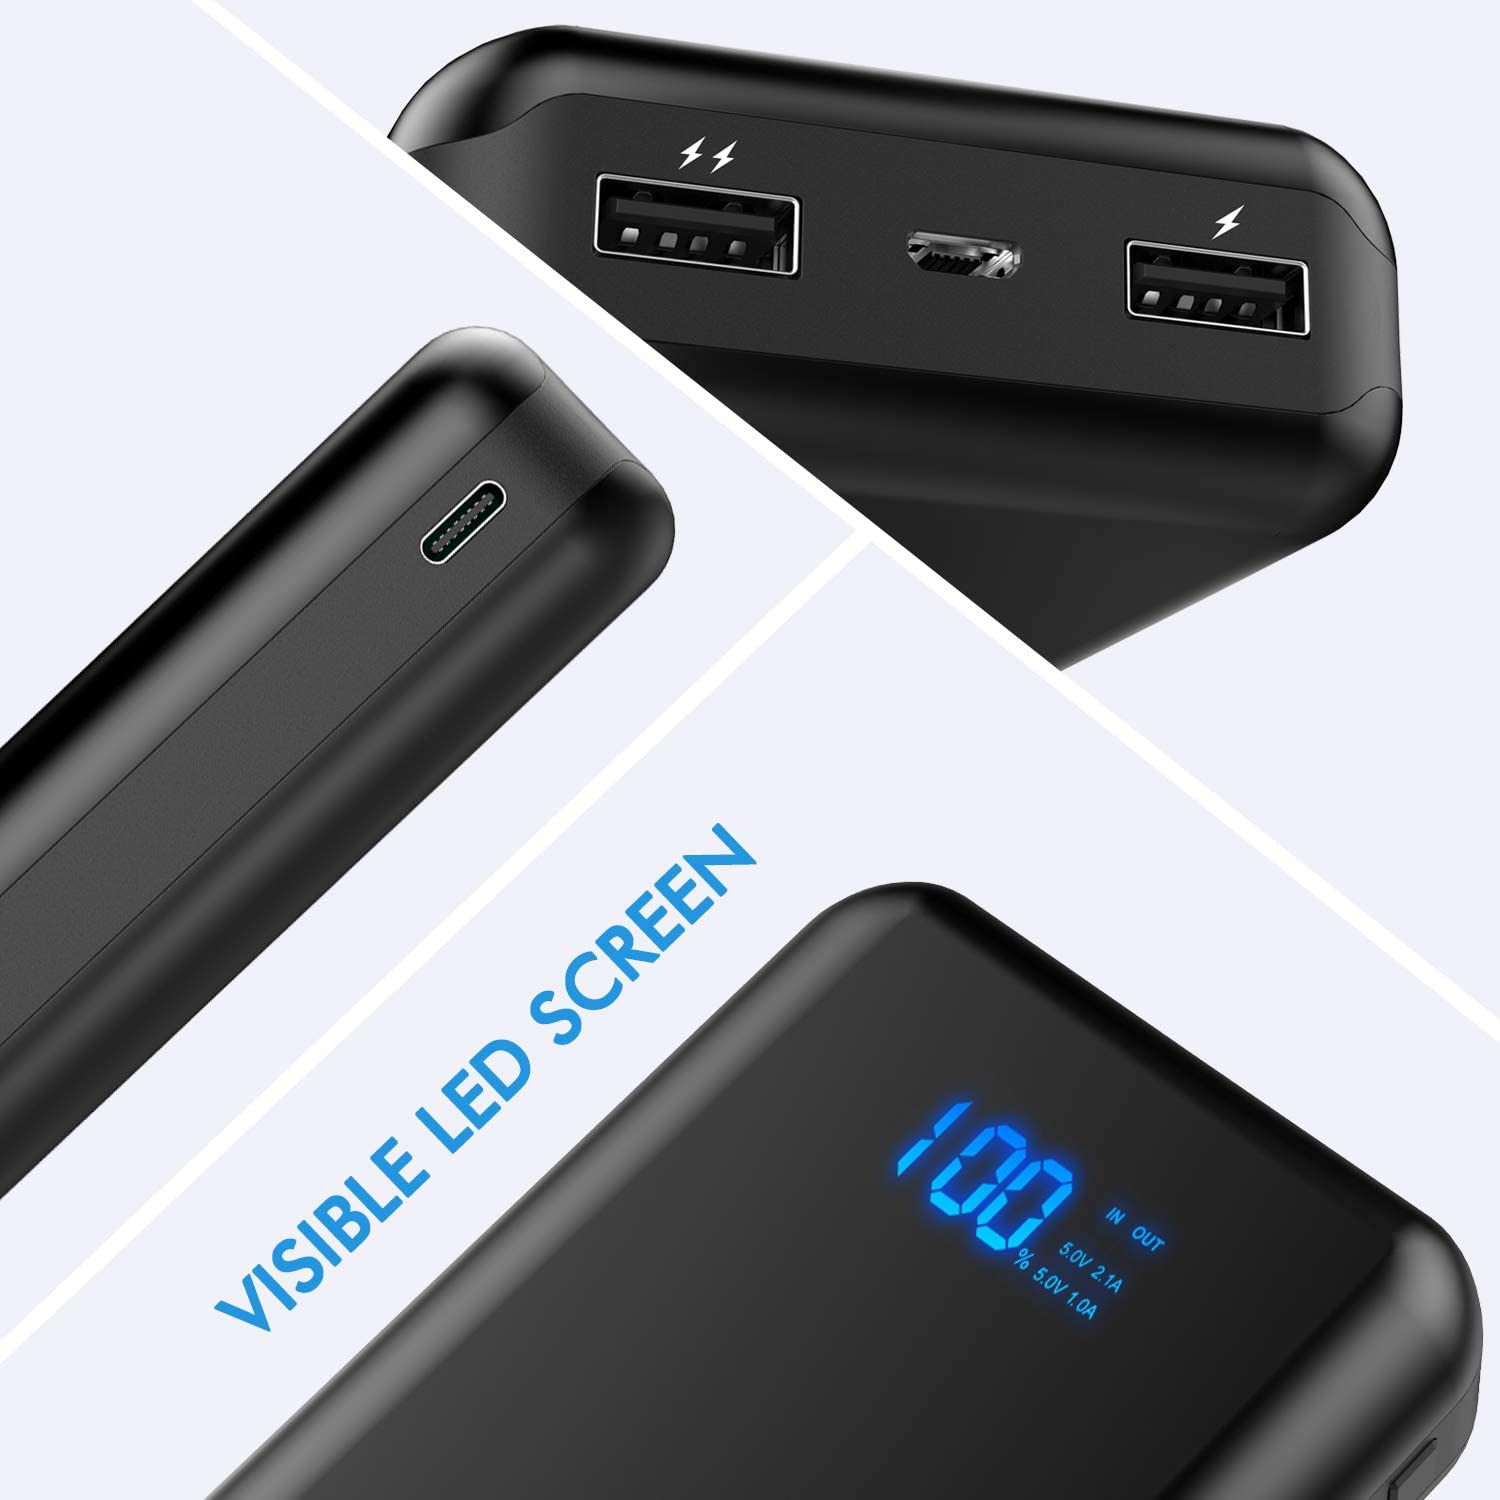 Power Bank Portable Charger 26800mAh Portable Phone Charger with Dual Ports Output,Phone Battery Backup with Visible LED Screen External Charger for iPhone,Samsung Galaxy,iPad and More.